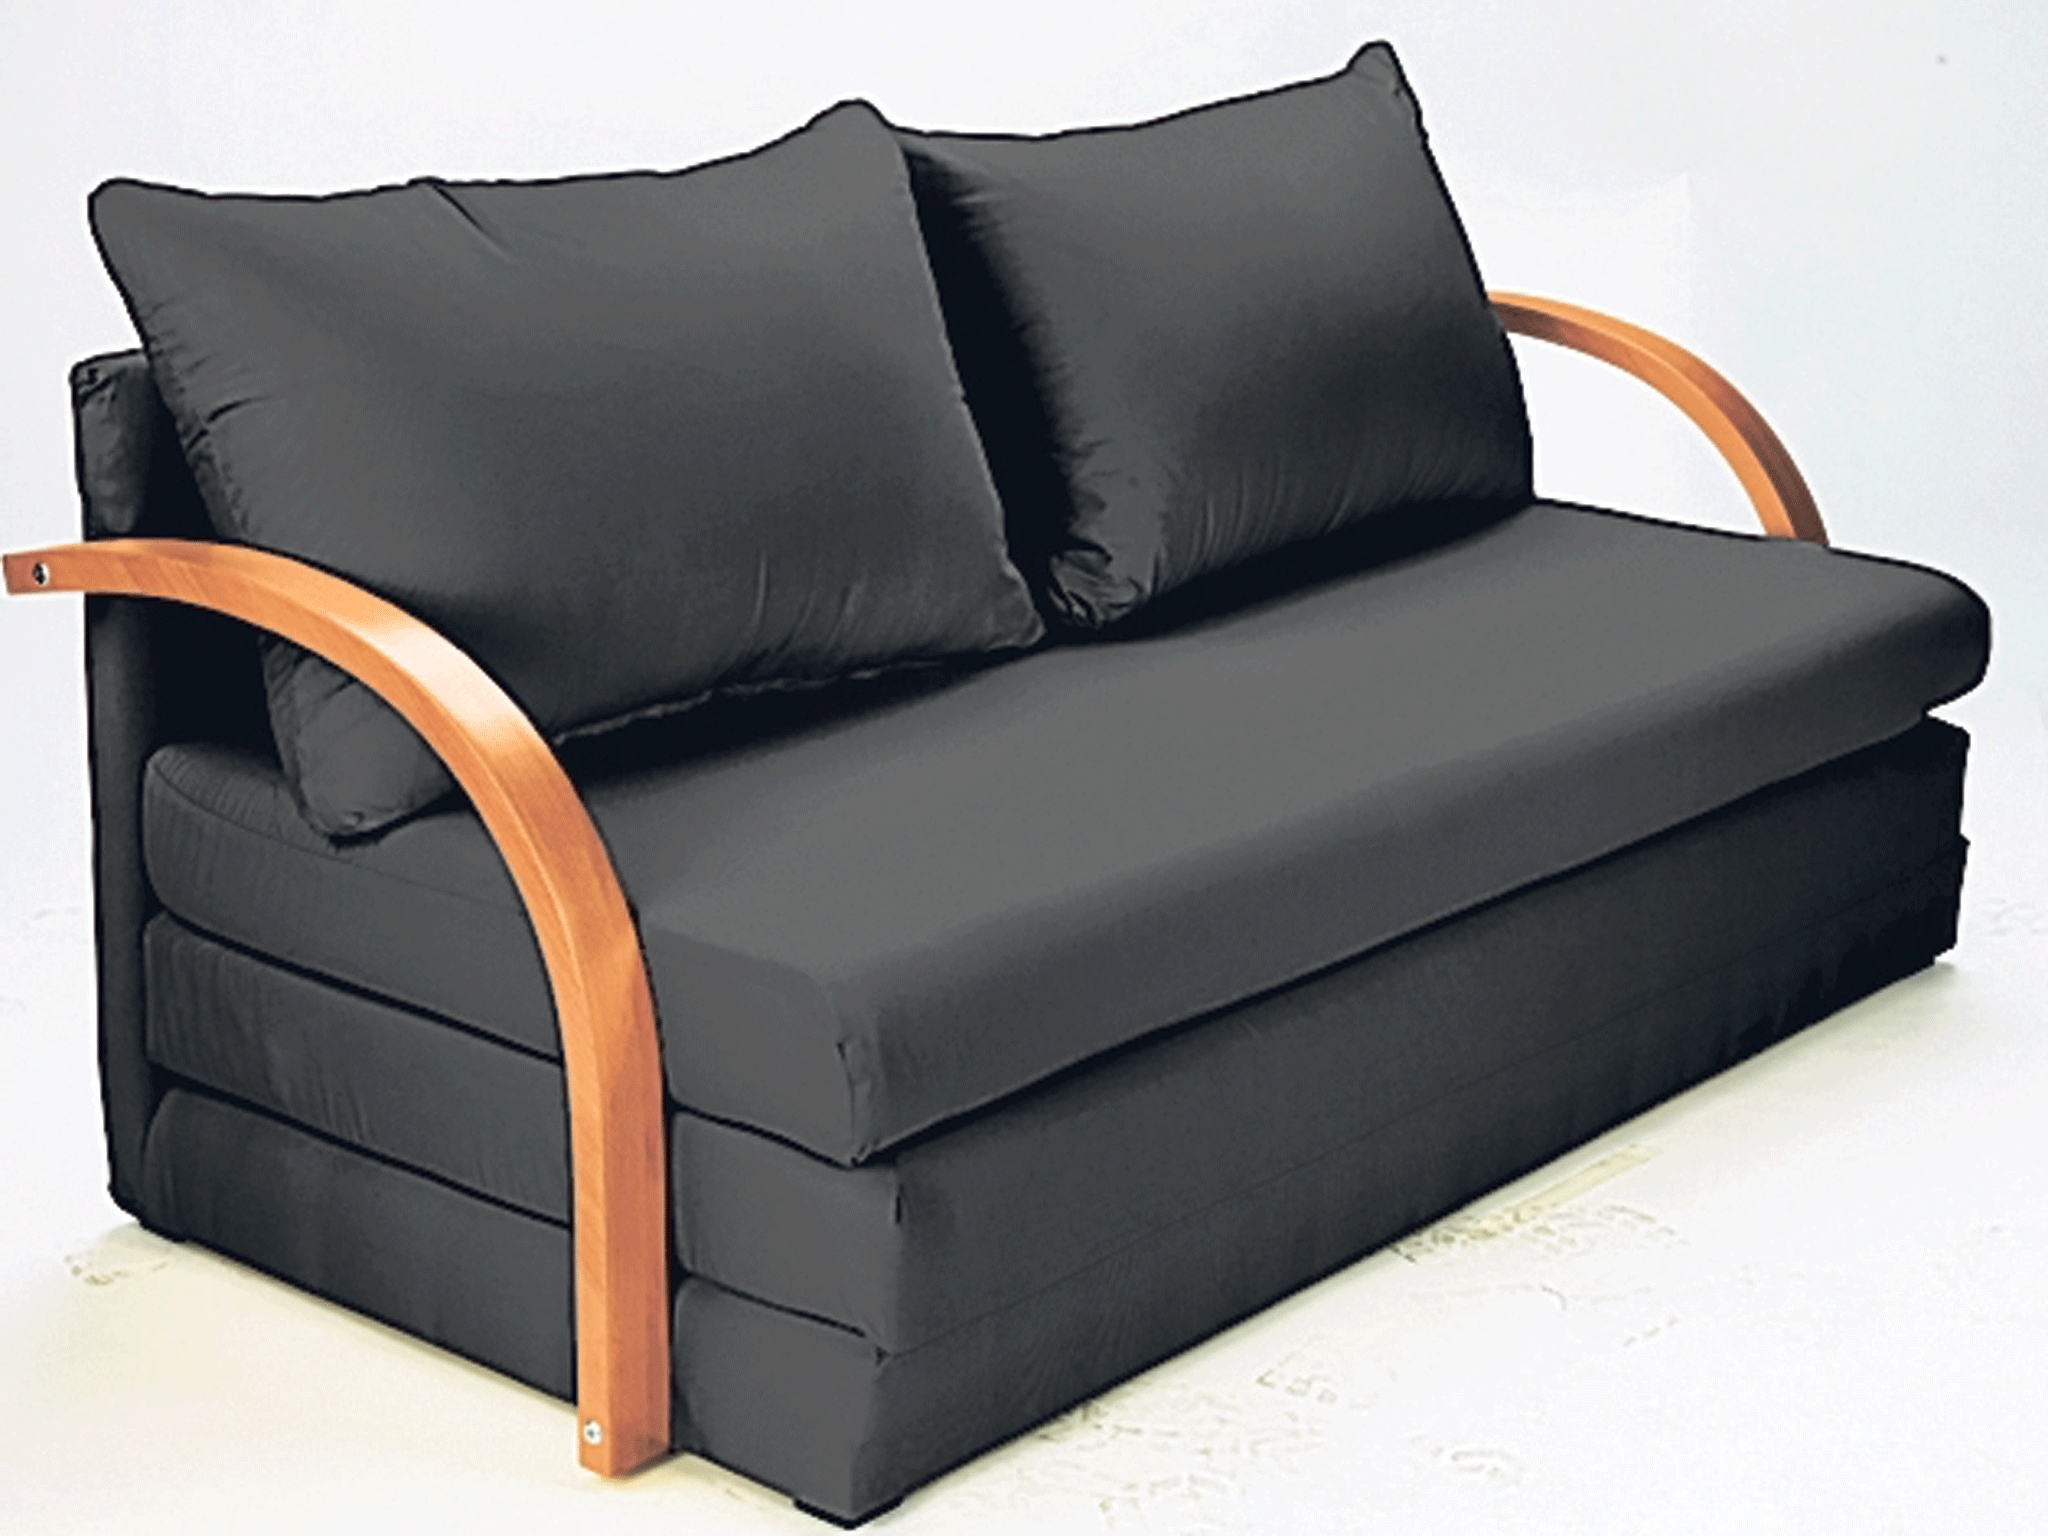 Preferred Sofa Beds Chairs Intended For Furniture: Sleeper Chair Ikea With Different Styles And Fabrics To (View 9 of 20)